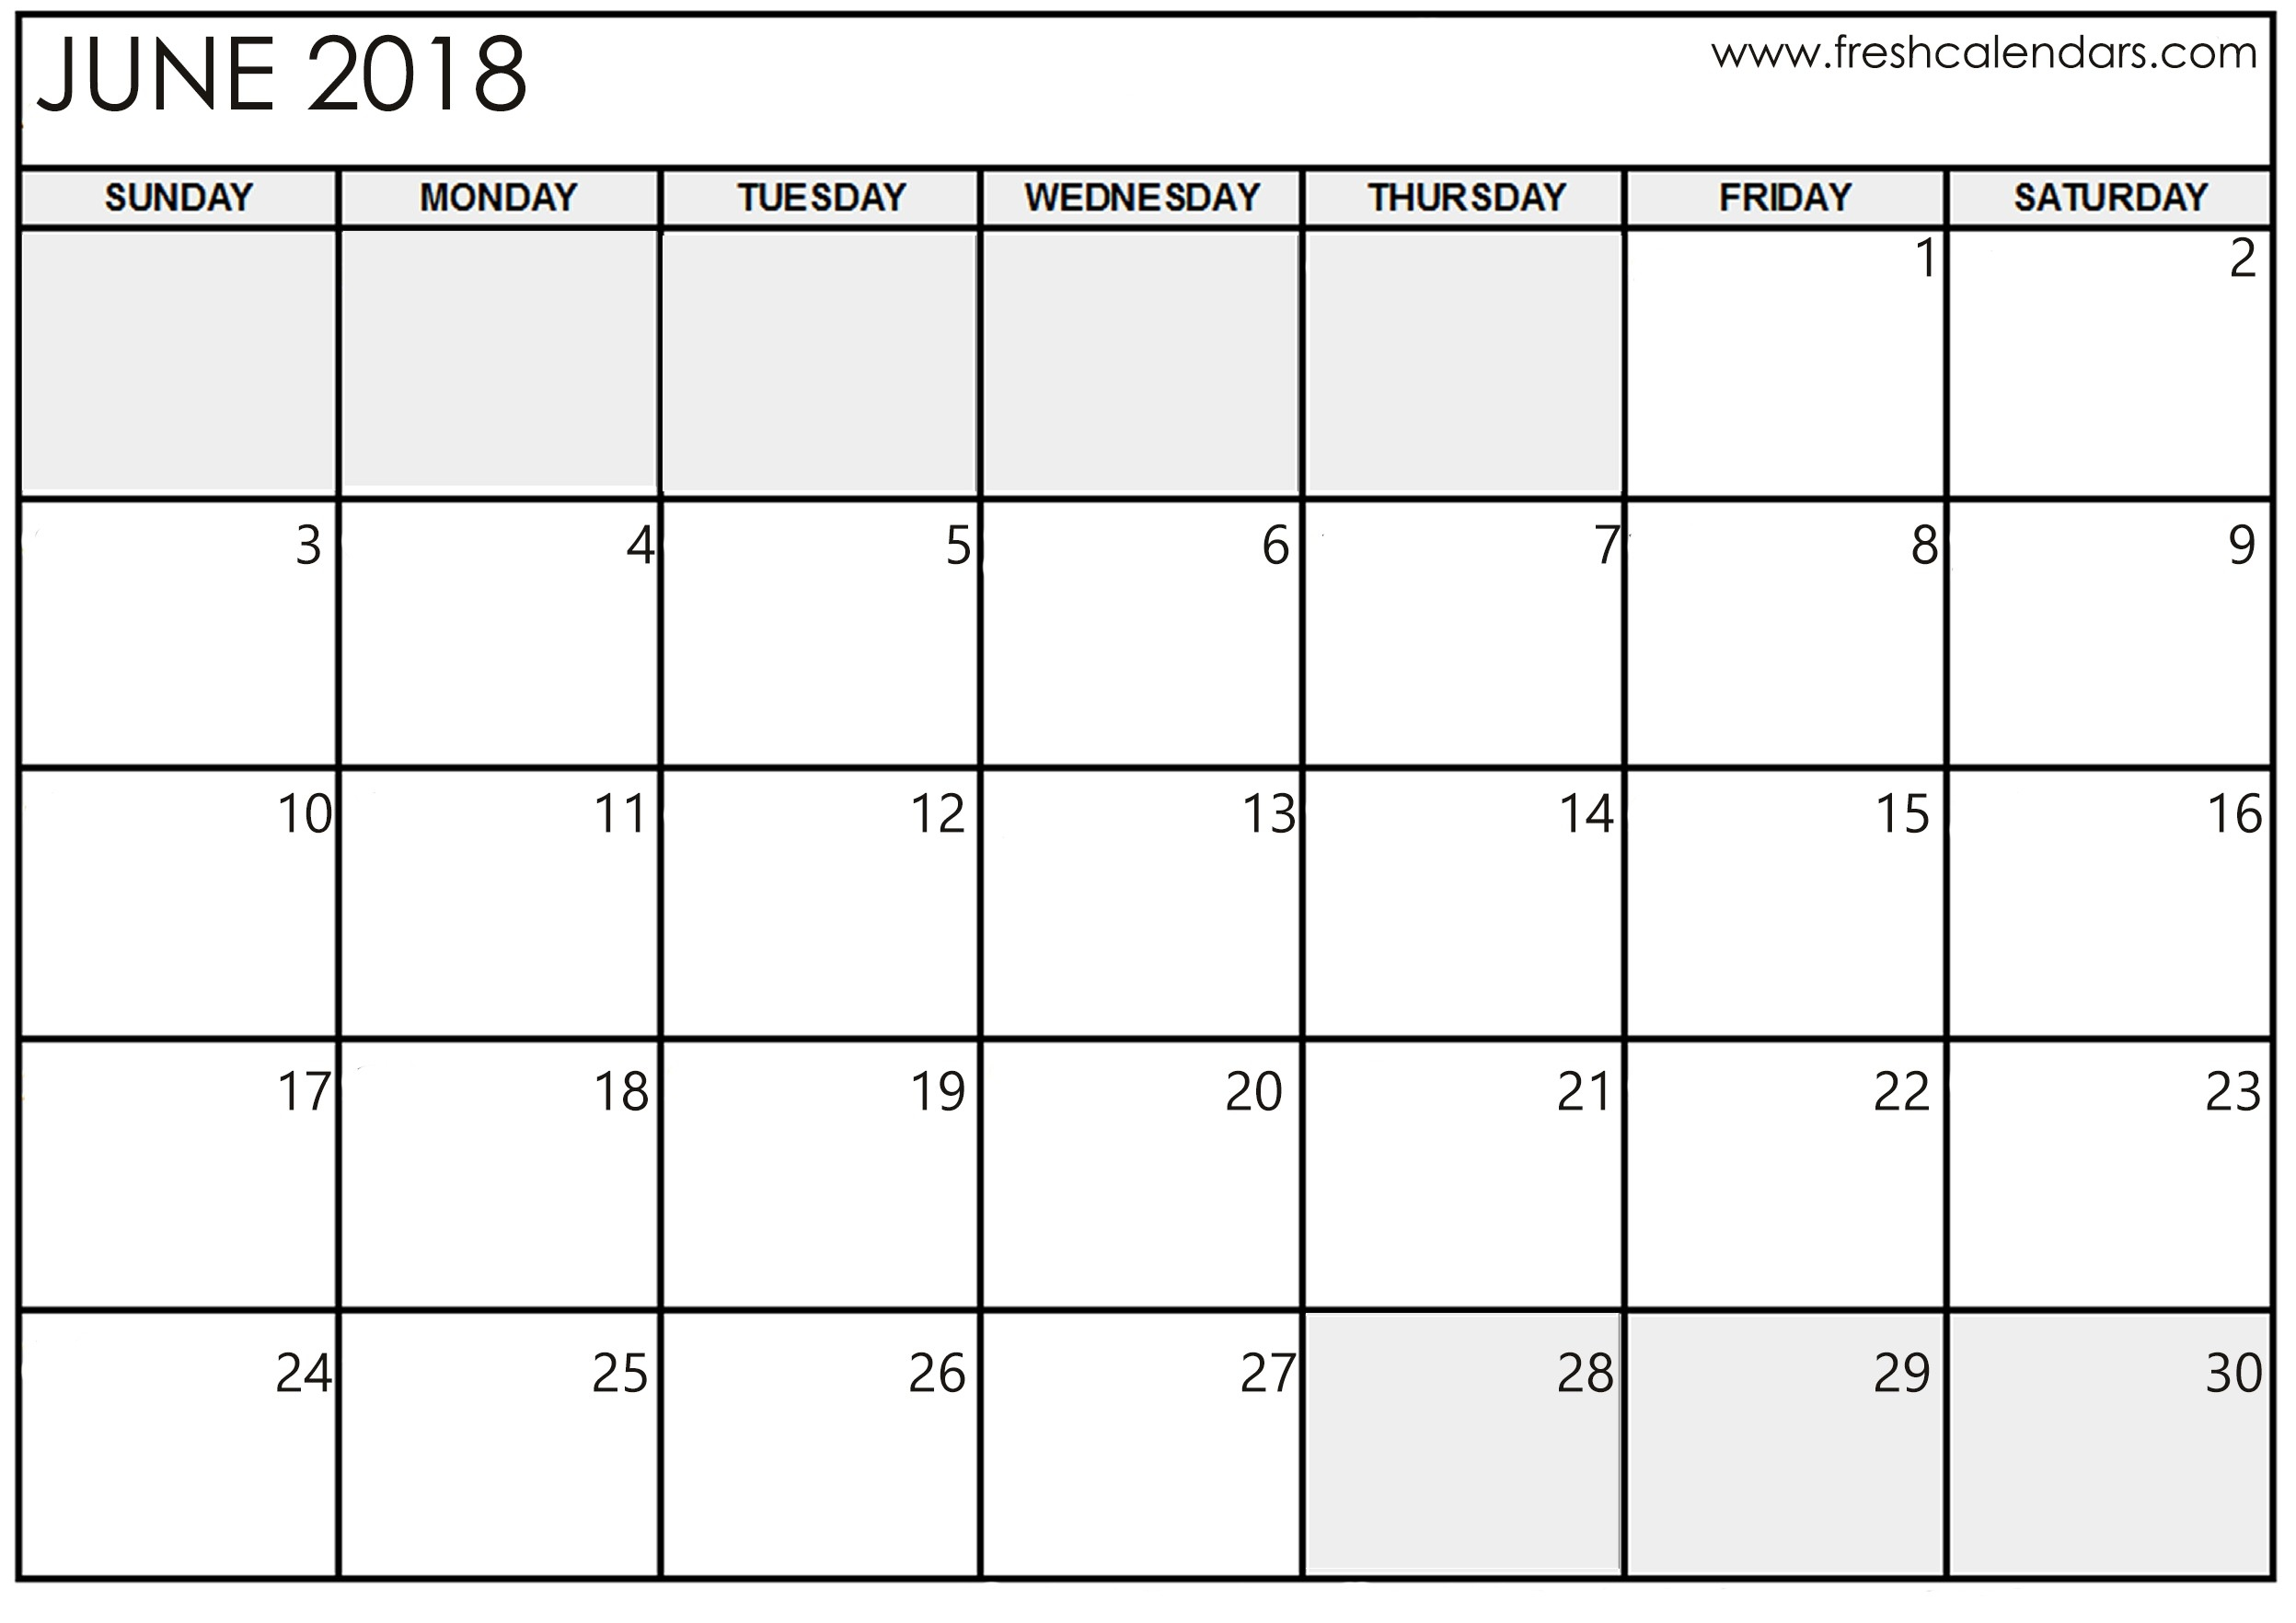 Blank Calendar June 2018 Printable Template Download - July  Blank Full Page Calendar Printable June